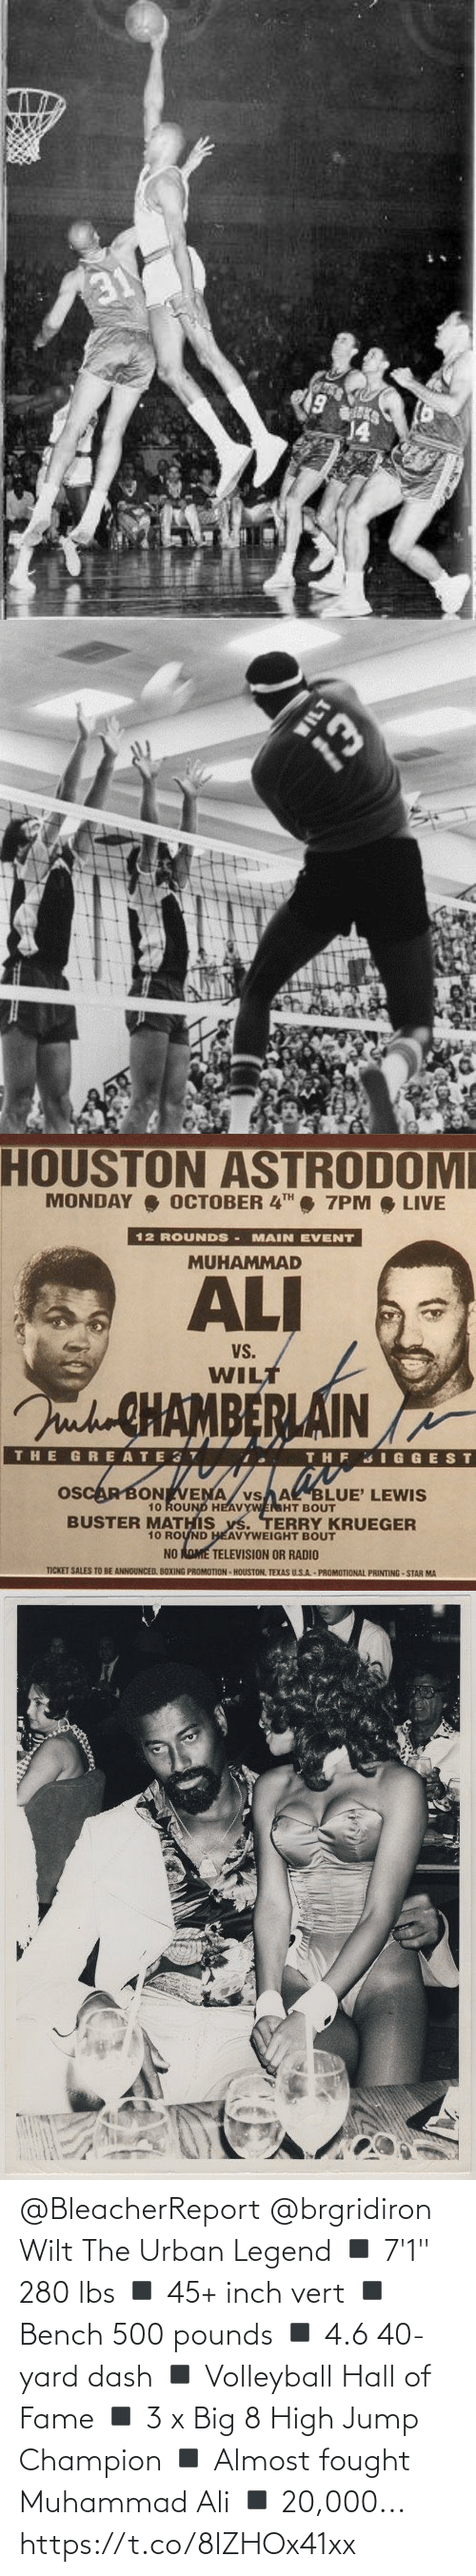 "lbs: @BleacherReport @brgridiron Wilt The Urban Legend  ◾️ 7'1"" 280 lbs ◾️ 45+ inch vert ◾️ Bench 500 pounds ◾️ 4.6 40-yard dash ◾️ Volleyball Hall of Fame ◾️ 3 x Big 8 High Jump Champion ◾️ Almost fought Muhammad Ali ◾️ 20,000... https://t.co/8IZHOx41xx"